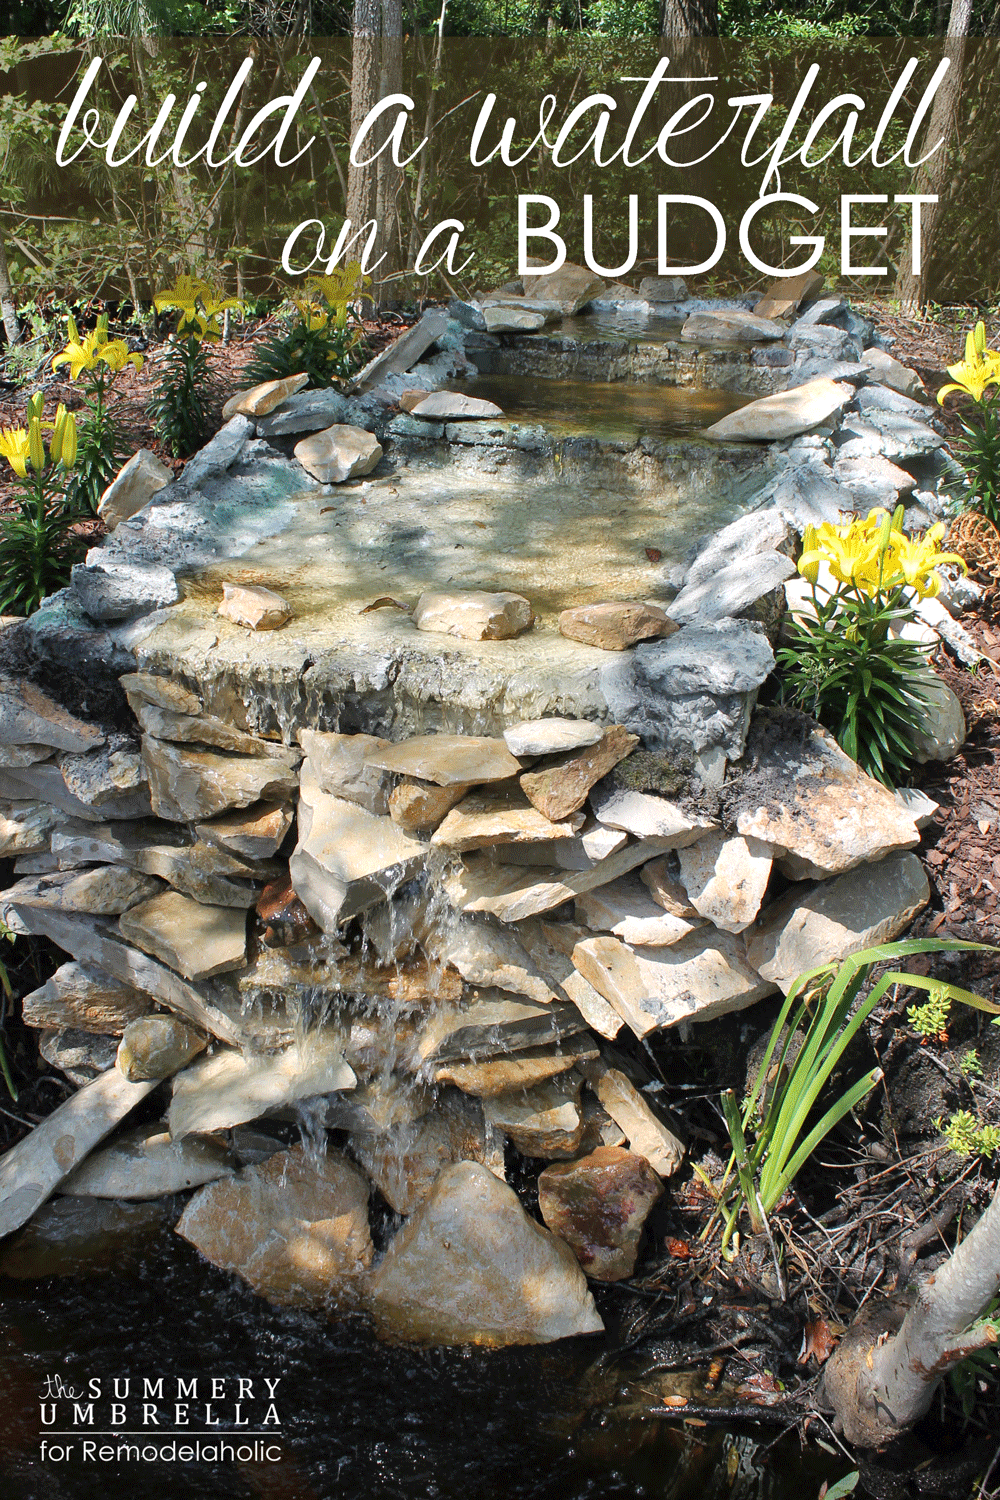 18 Best DIY Backyard Pond Ideas and Designs for 2020 on Small Backyard Pond With Waterfall id=18593